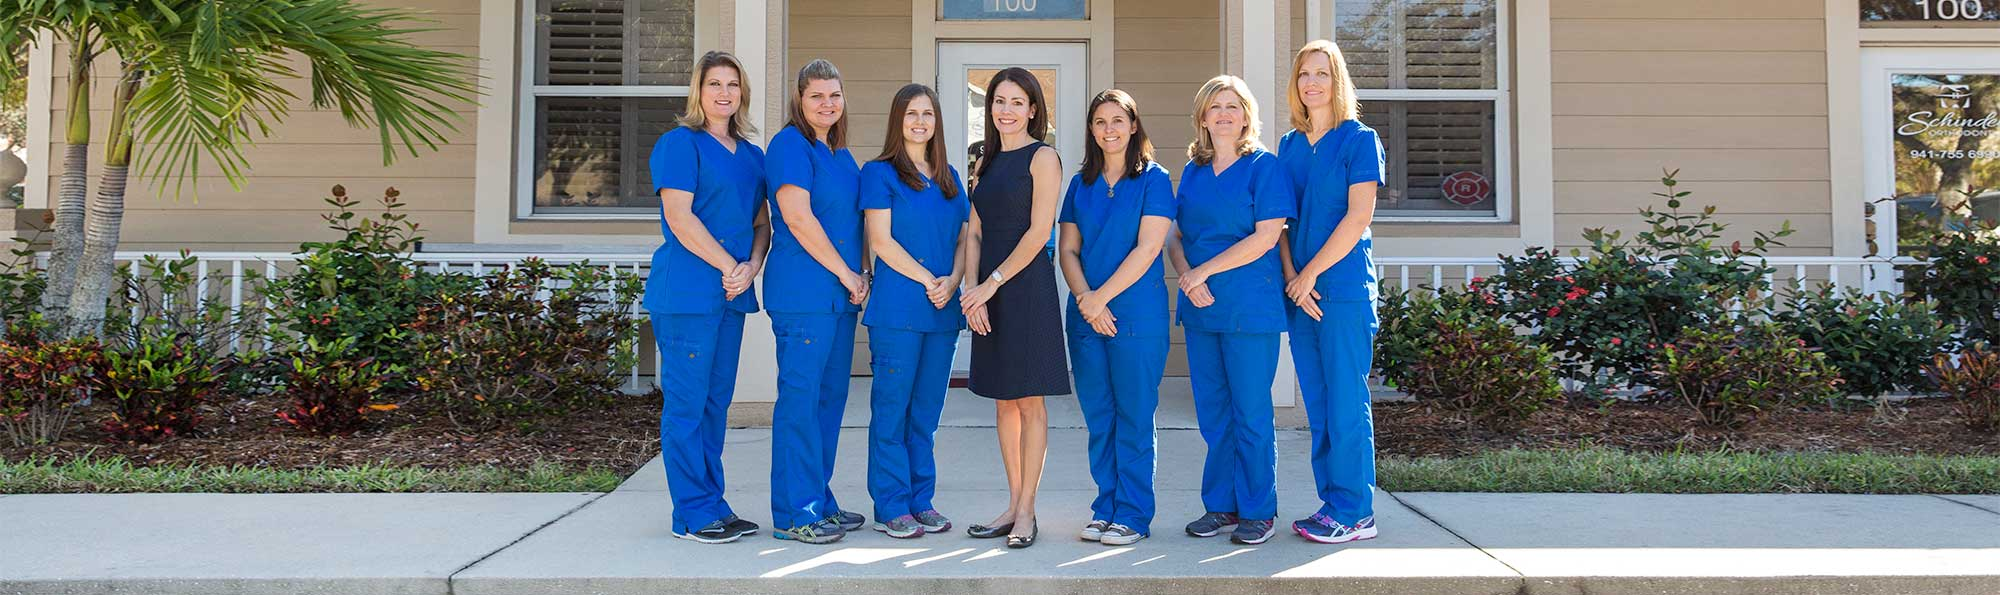 schindel orthodontics staff photo